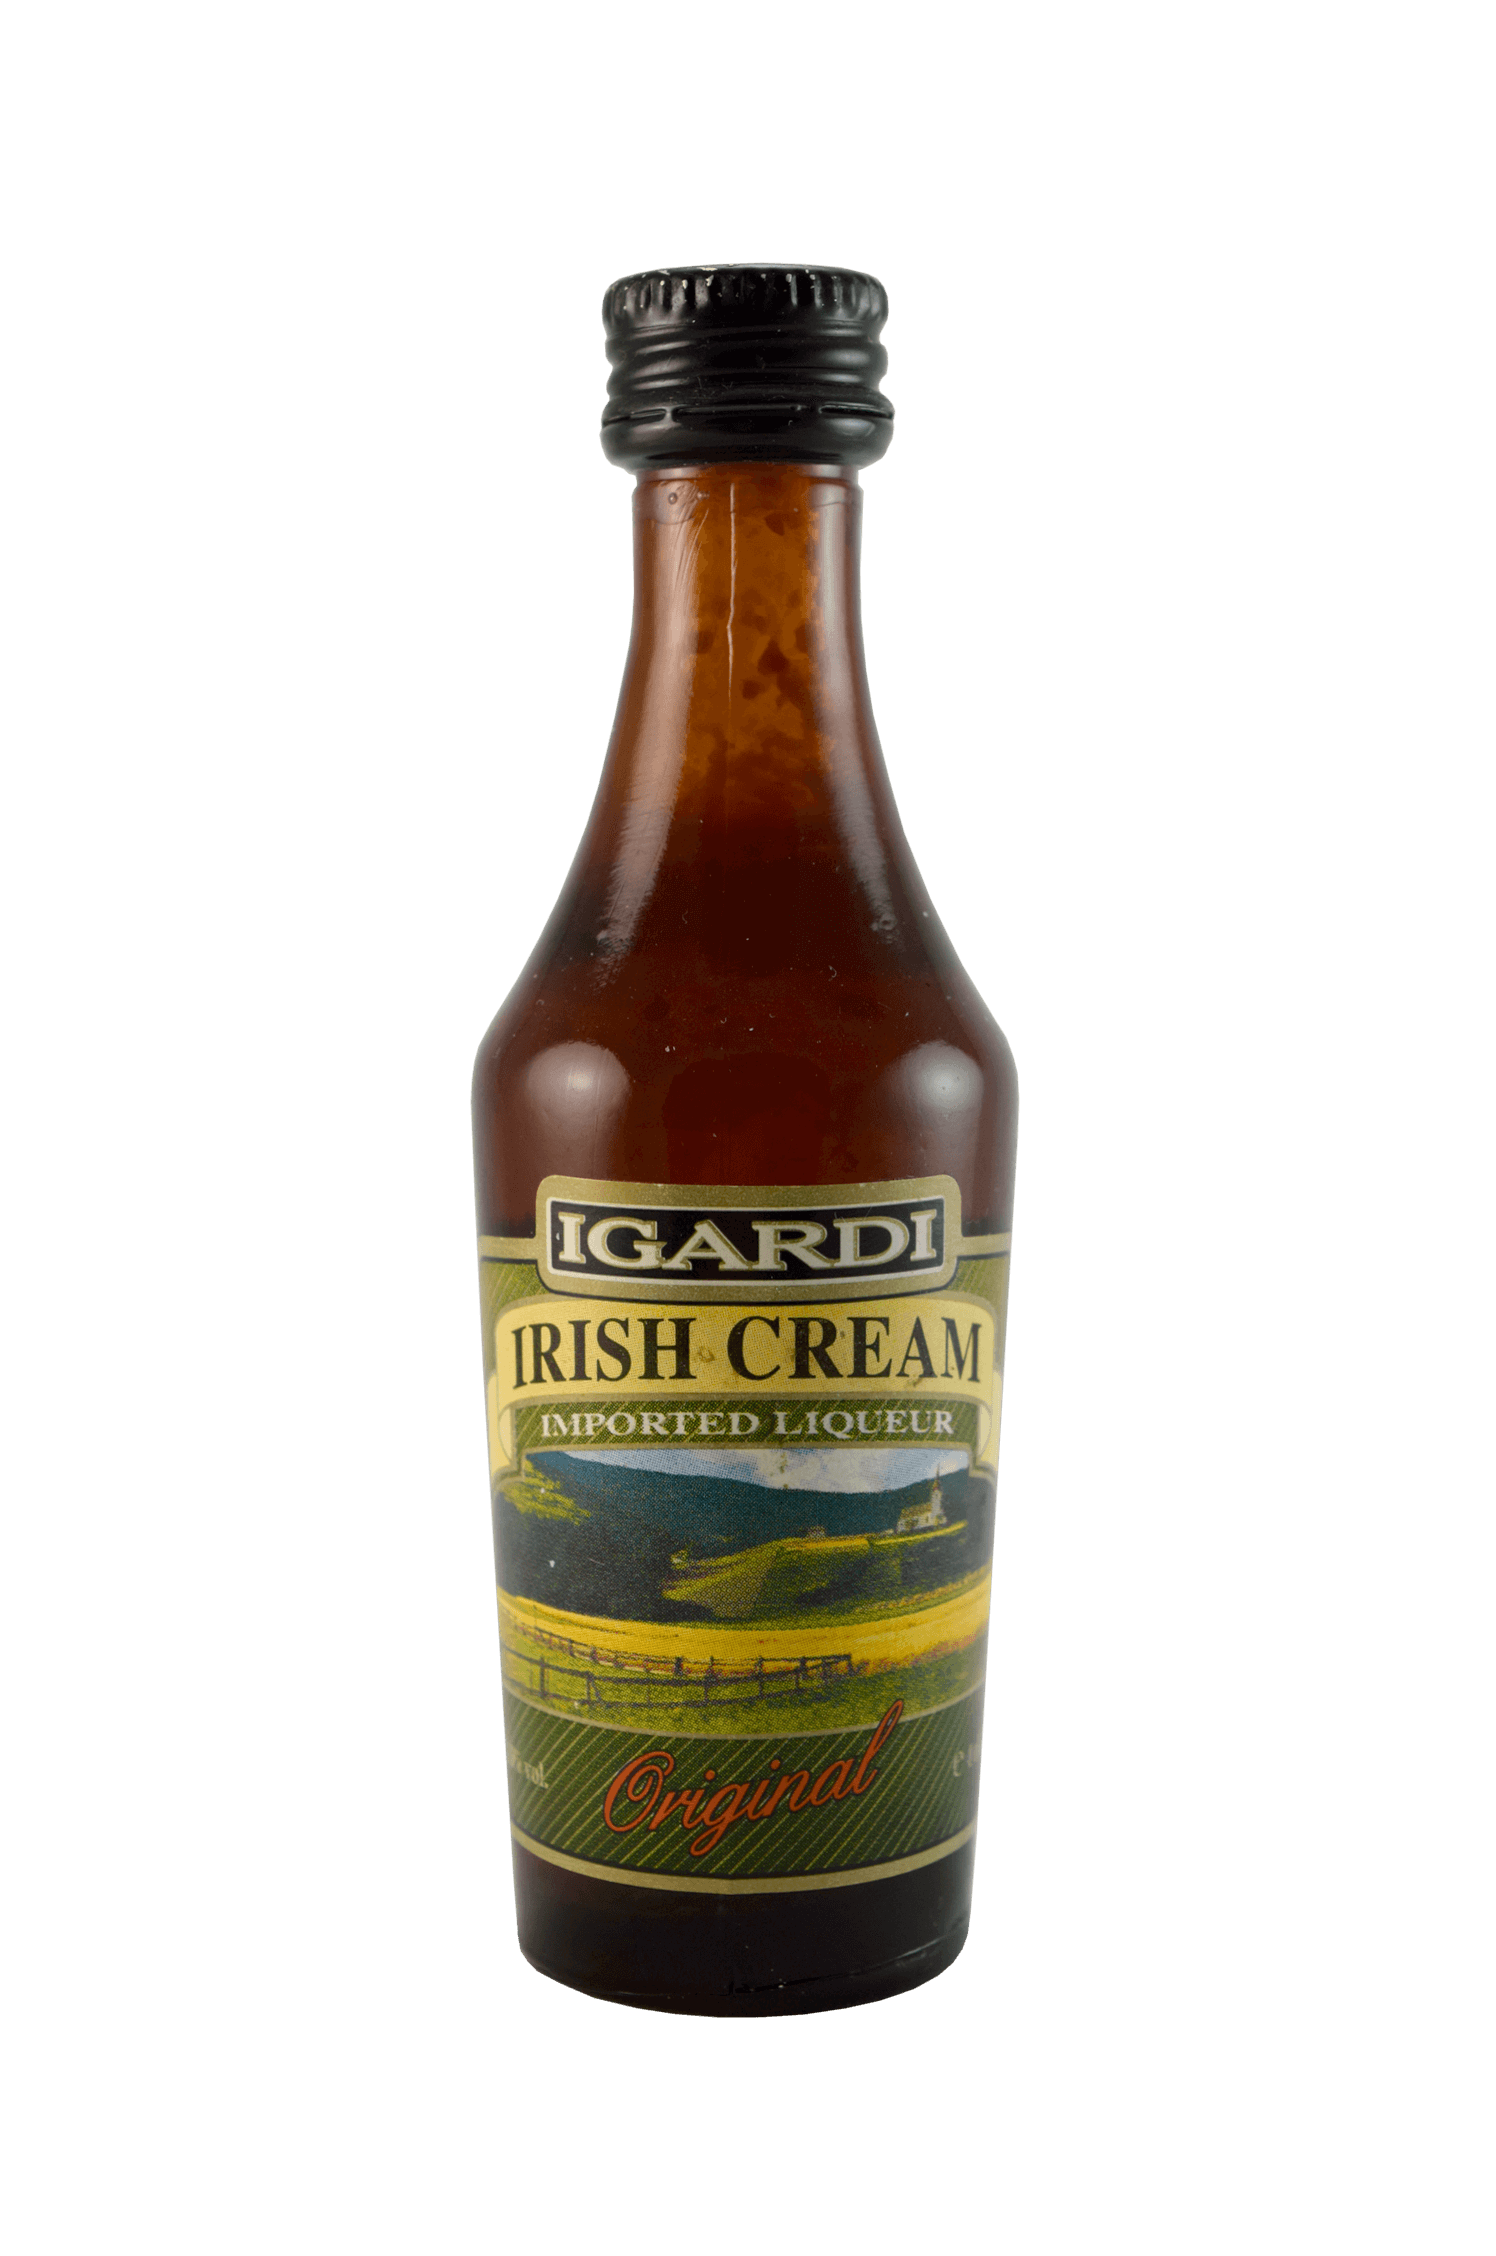 Igardi Irish Cream